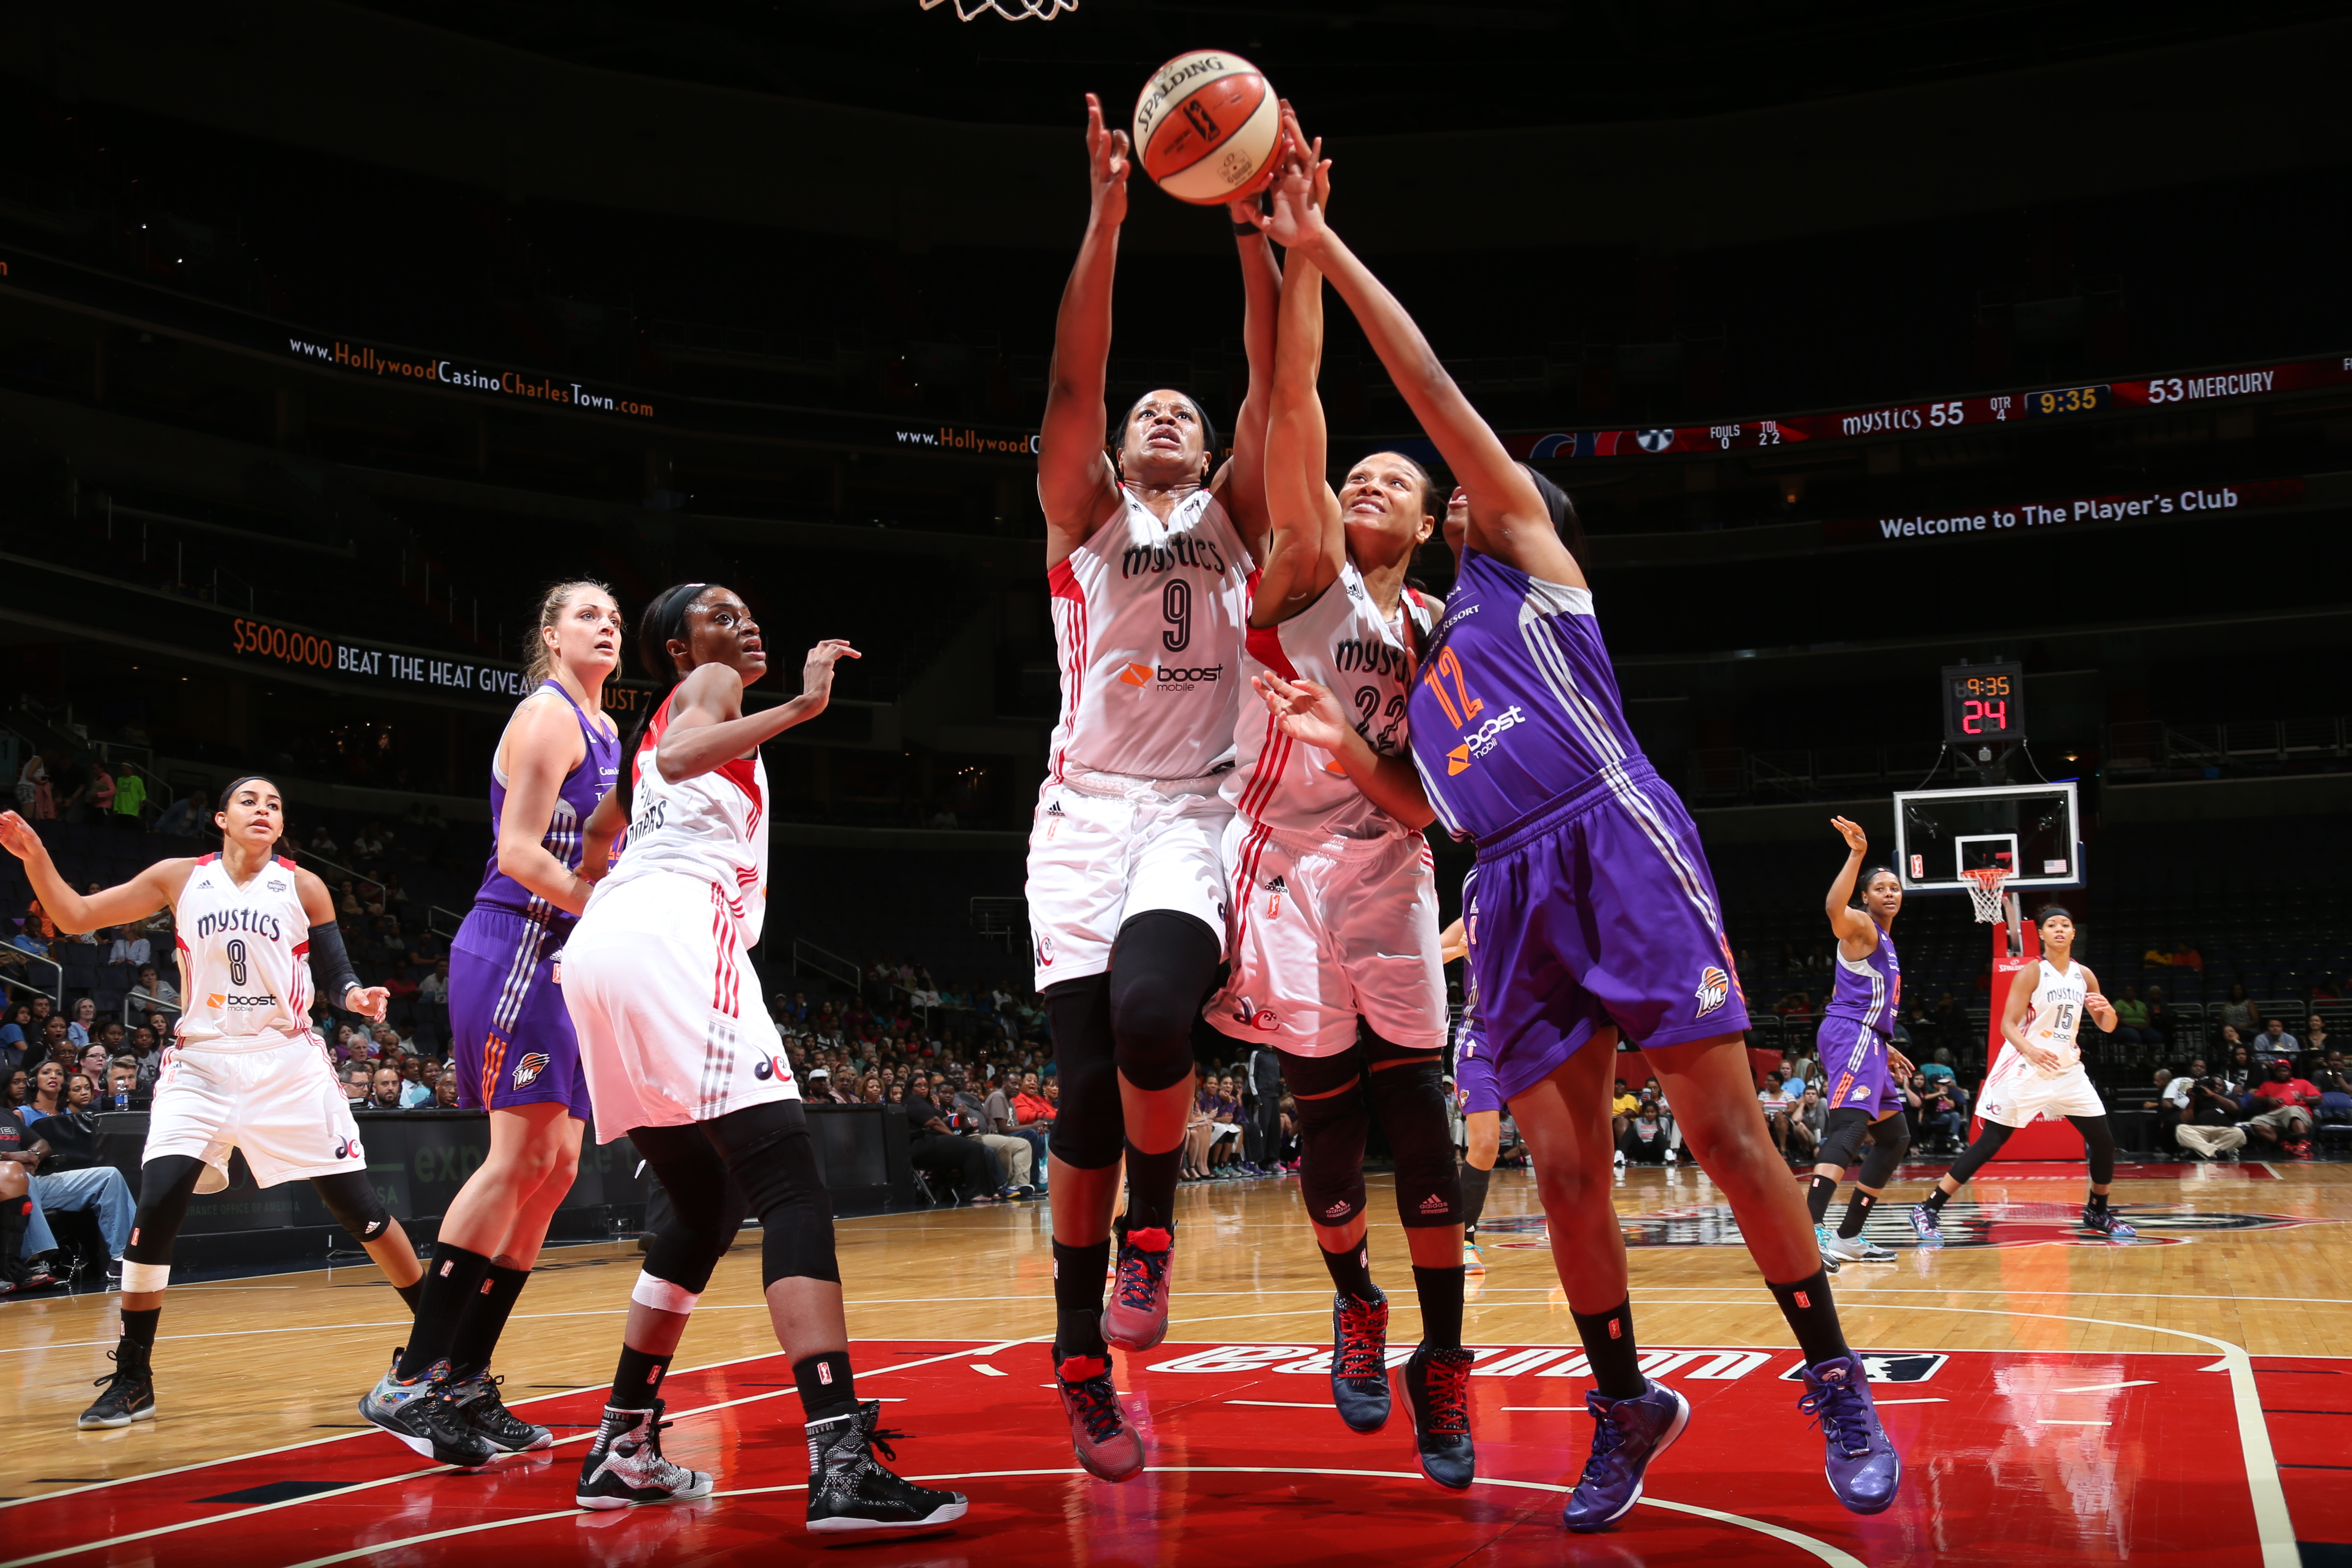 WASHINGTON, DC - AUGUST 28: Kia Vaughn #9 and Armintie Herrington #22 of the Washington Mystics battle Alex Harden #12 of the Phoenix Mercury for the rebound on August 25, 2015 at the Verizon Center in Washington, DC. (Photo by Ned Dishman/NBAE via Getty